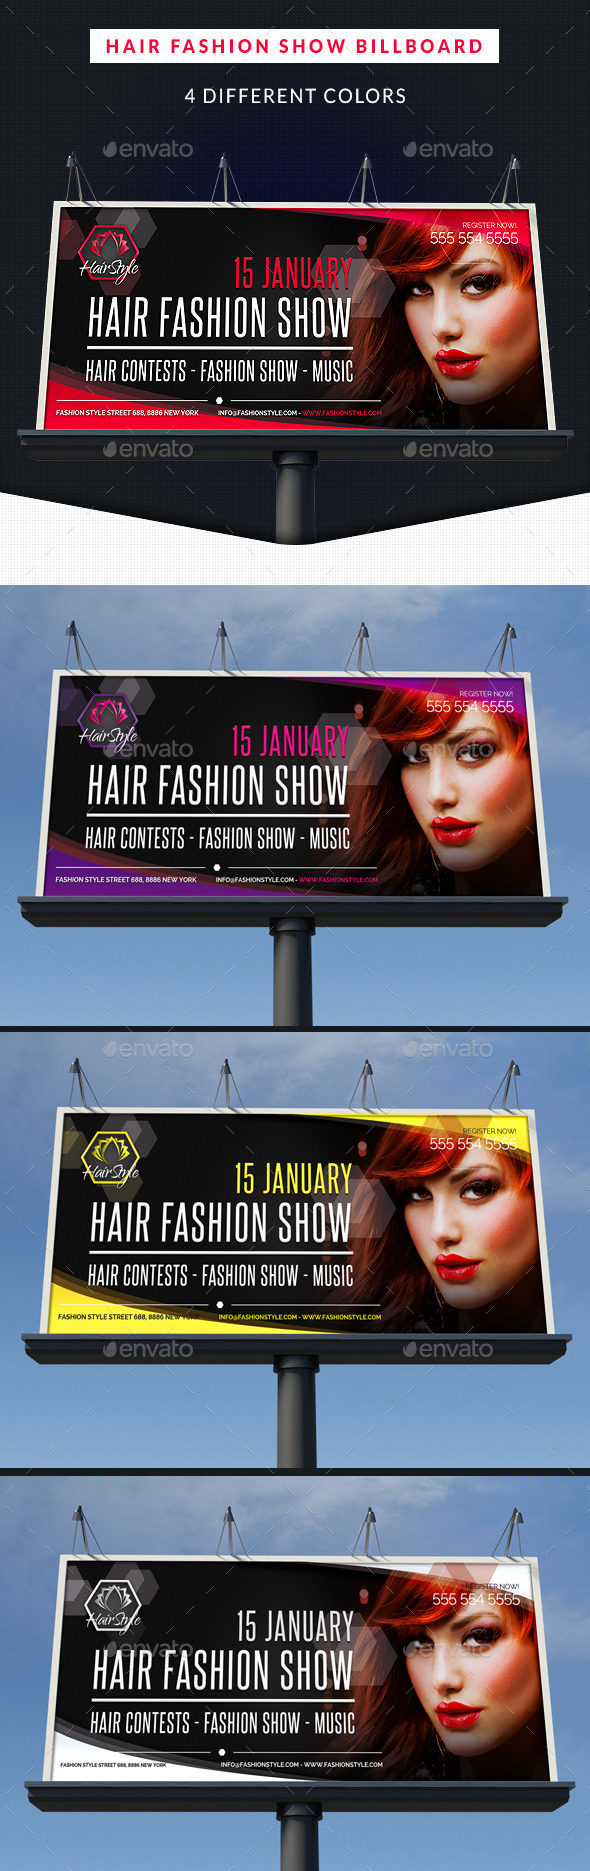 Hair Fashion Show Promotion Billboard Signage By Hollymolly Graphicriver